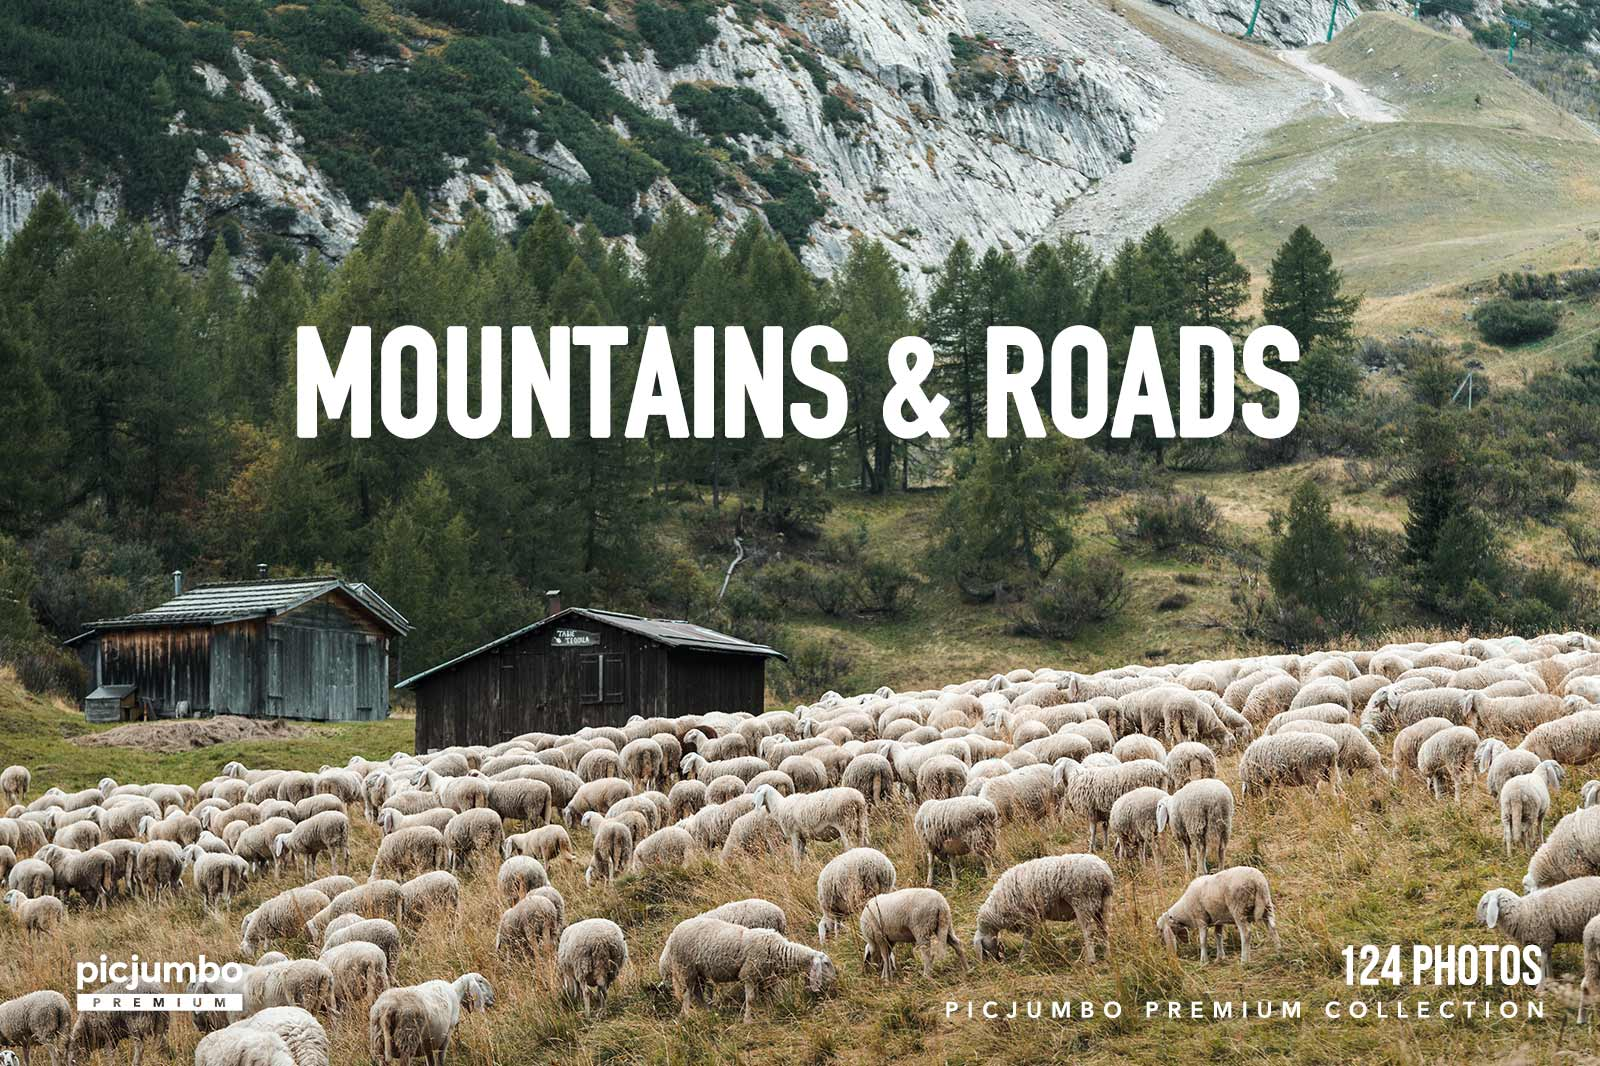 Mountains & Roads — Join PREMIUM and get instant access to this collection!